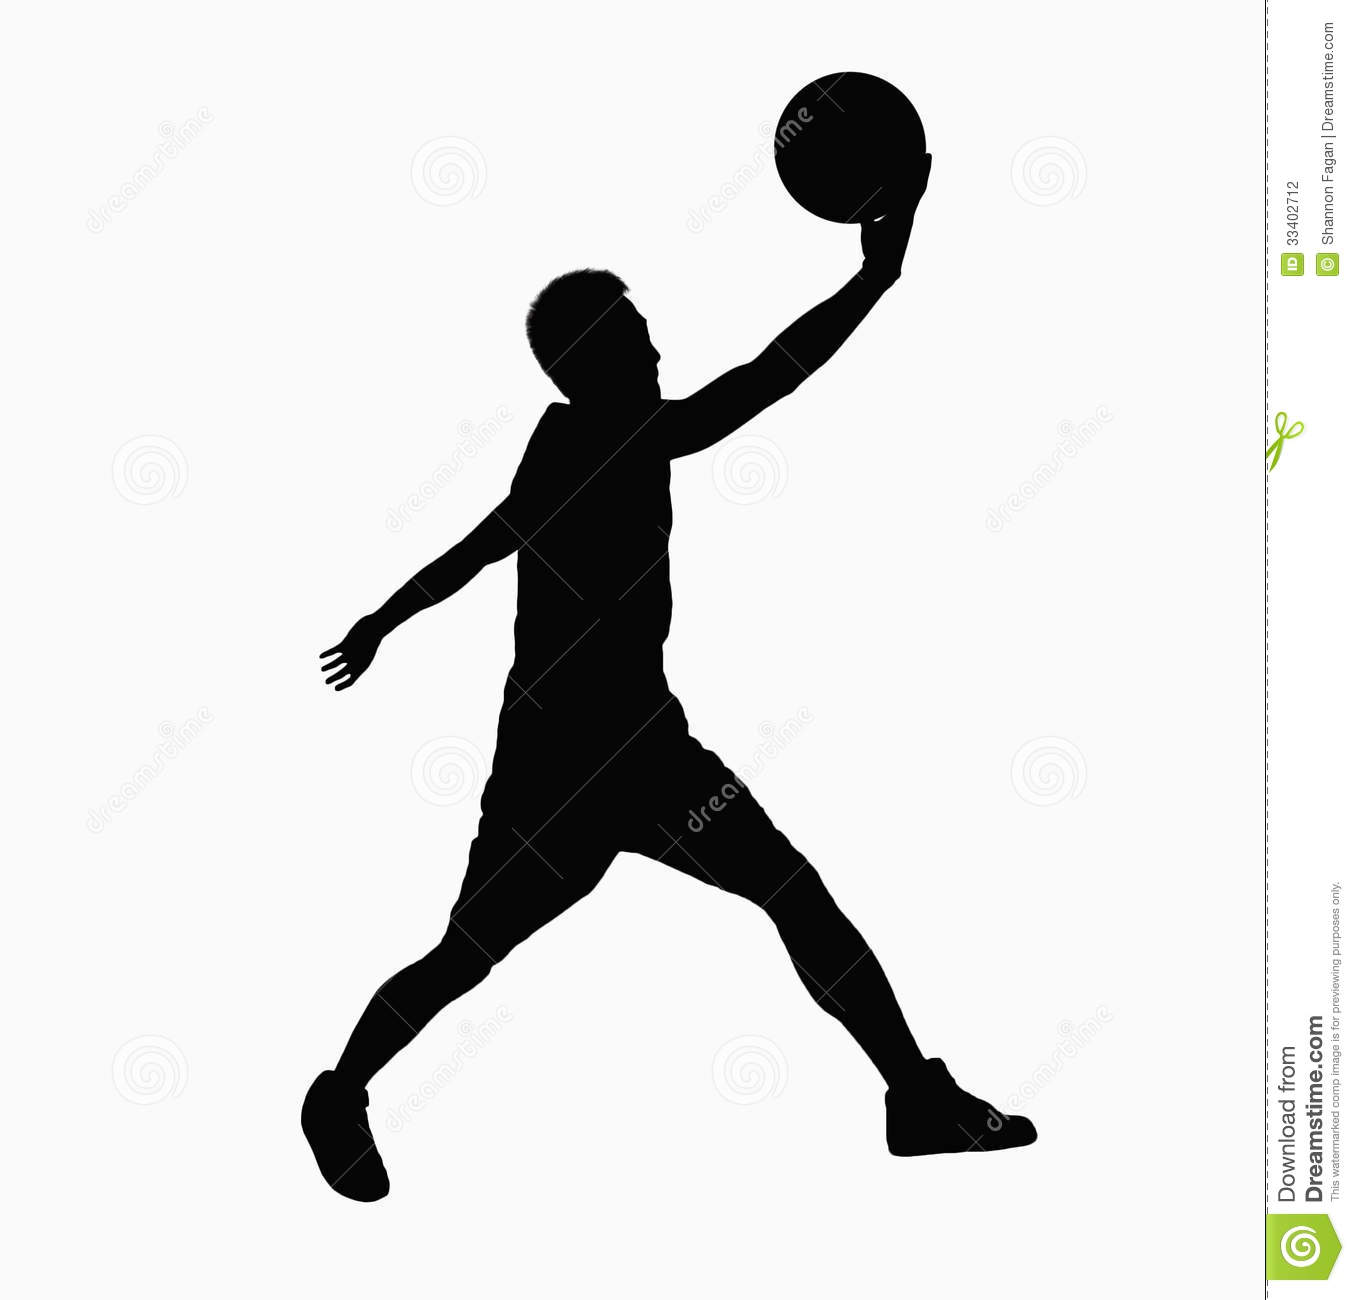 silhouette of basketball player jumping with ball